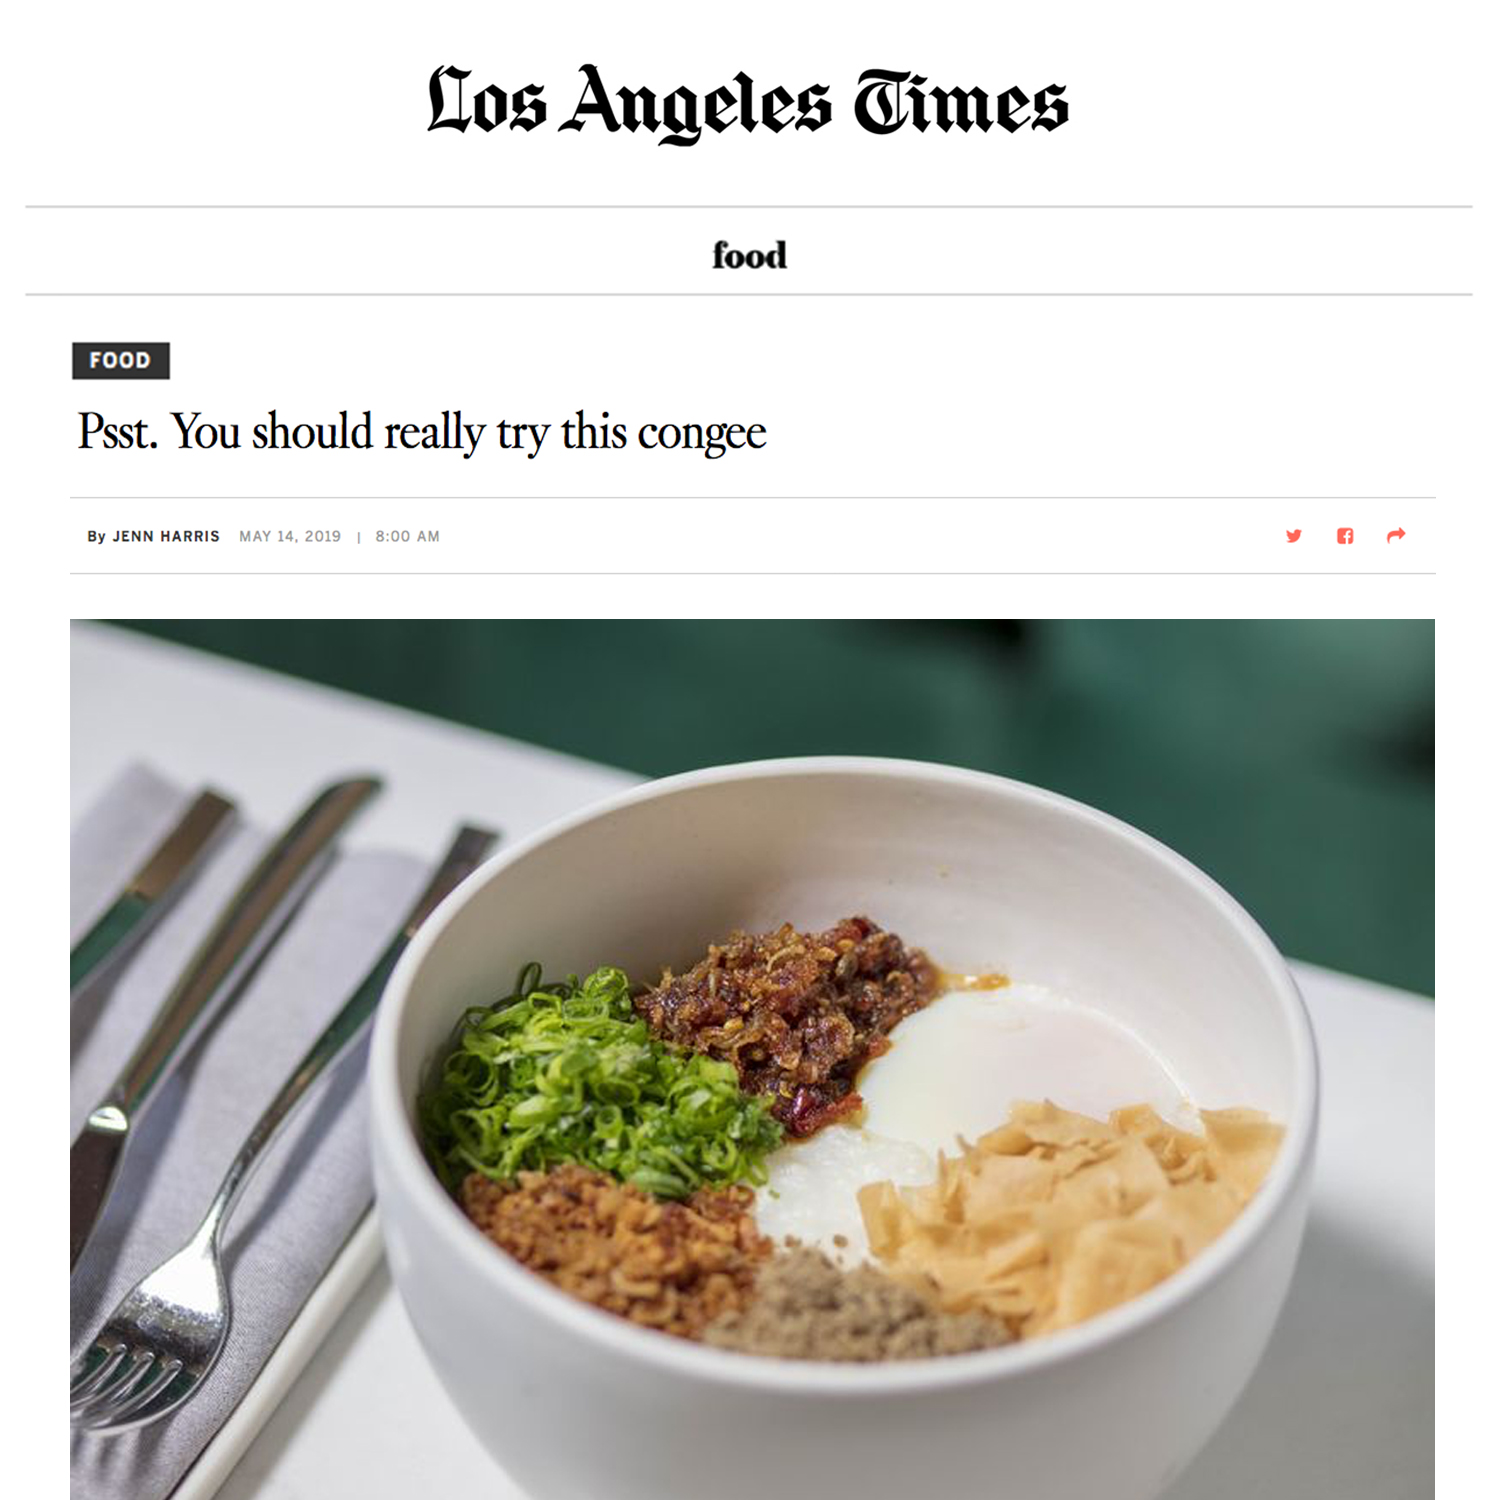 night_latimes3.jpg